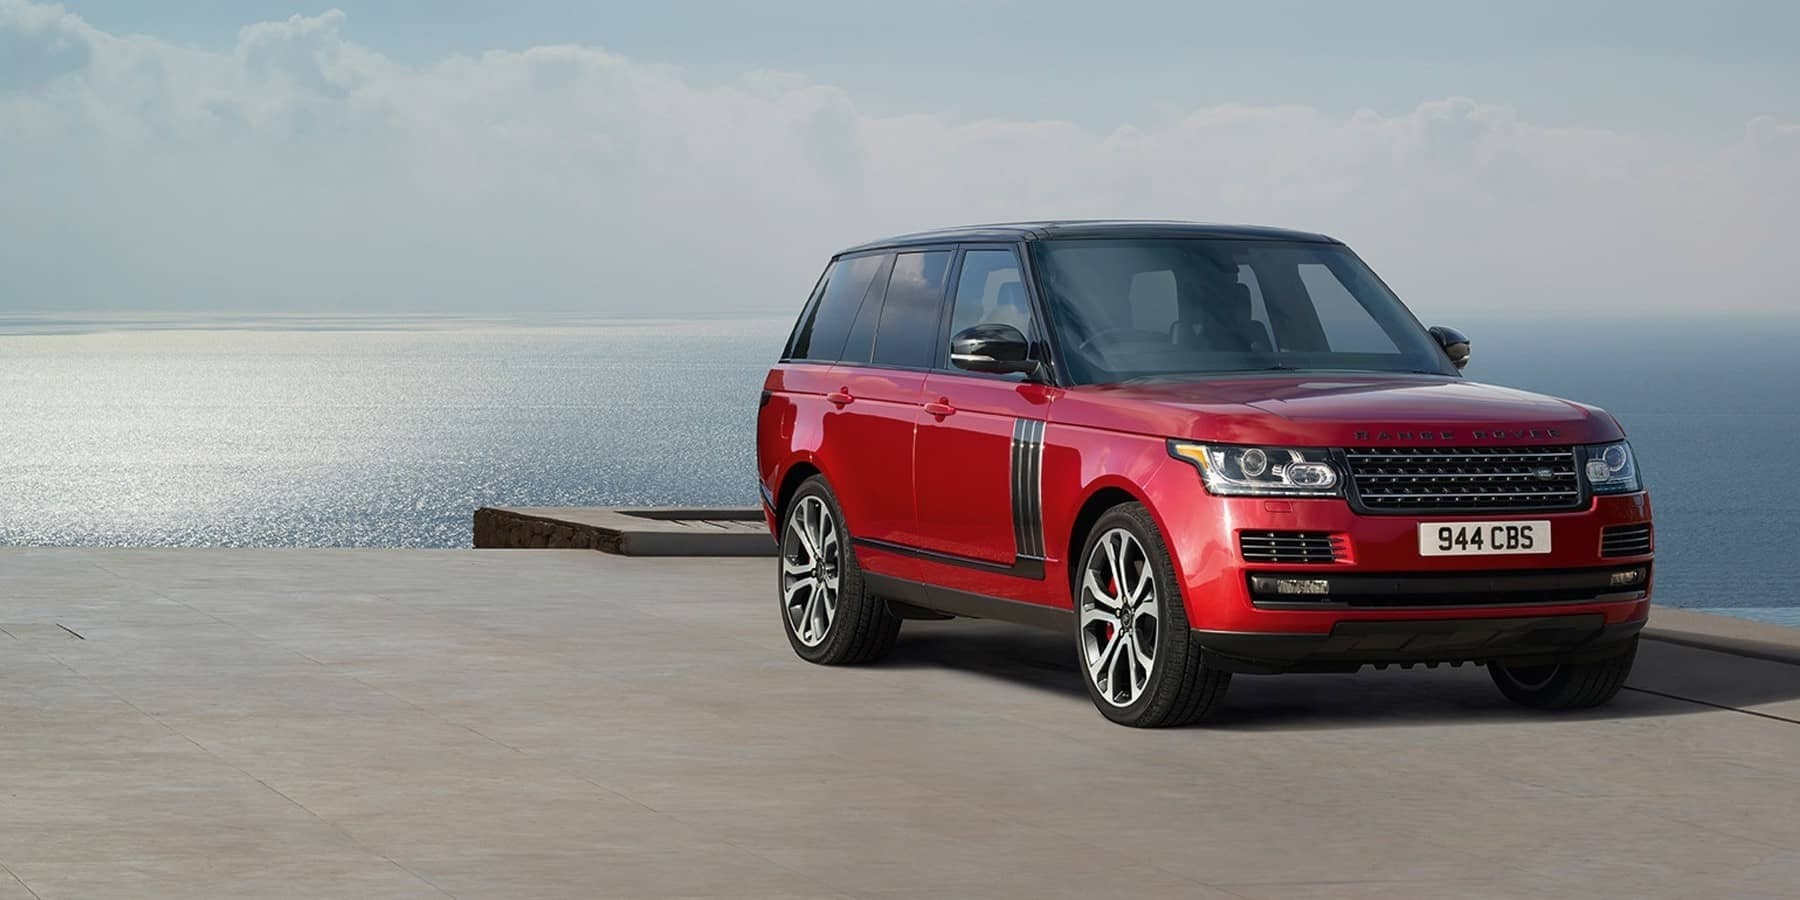 Land Rover Monmouth in Ocean, NJ   New & Used Cars